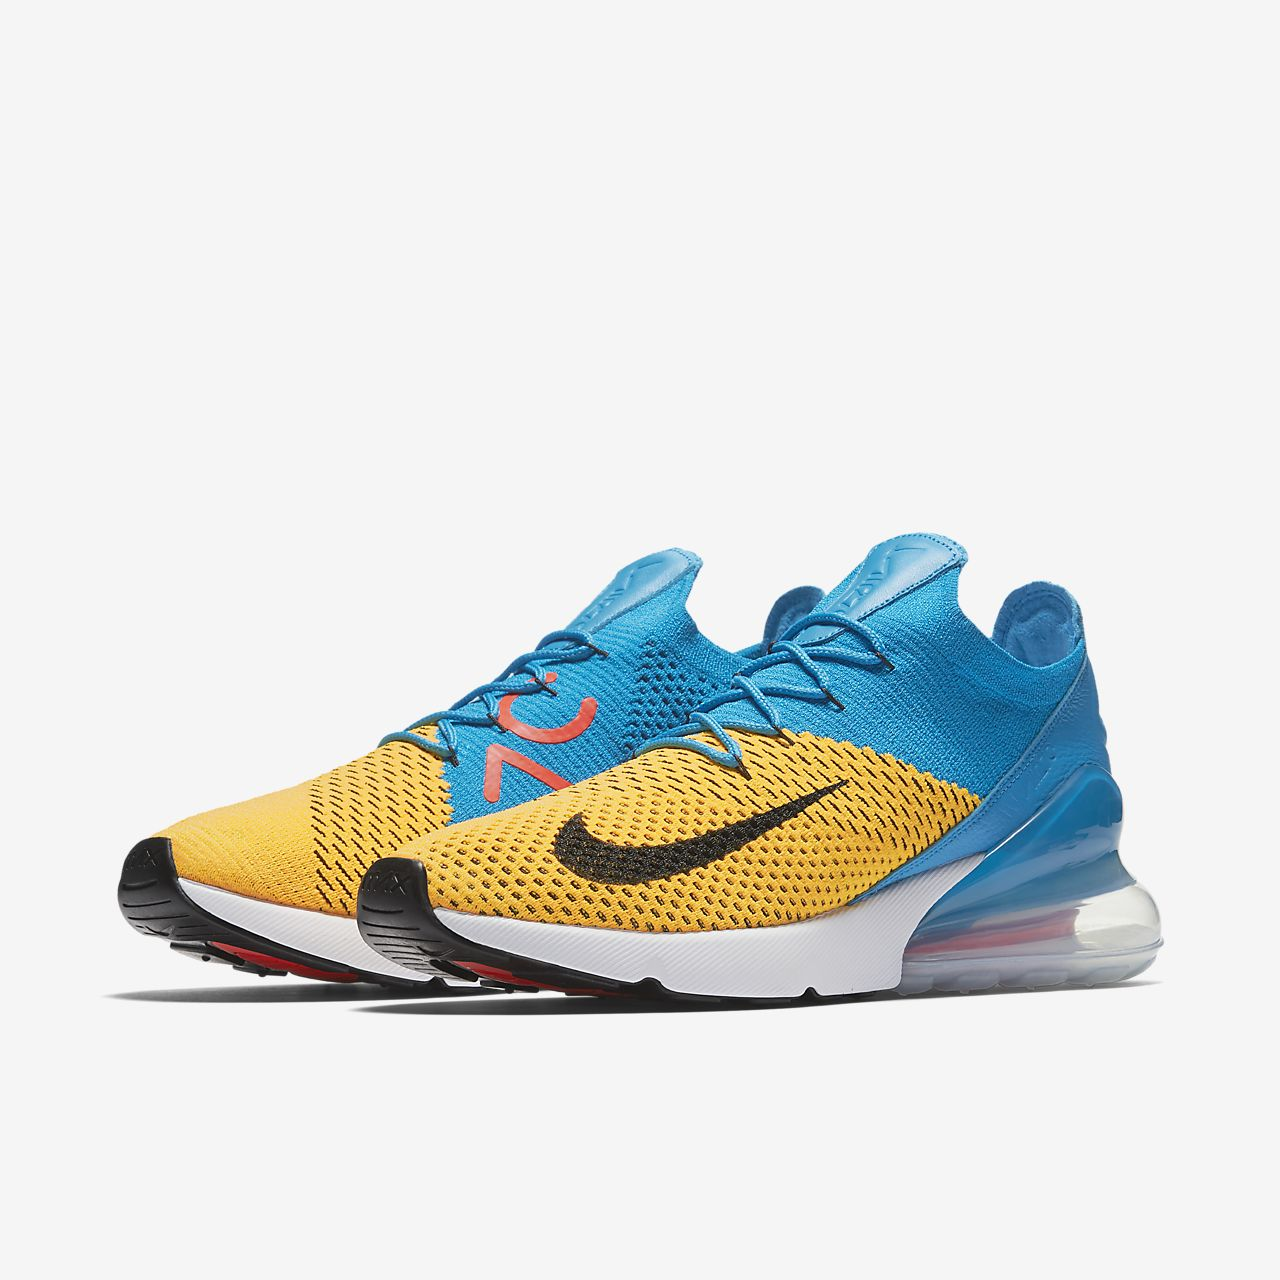 Nike Air Max 270 Flyknit Chaussures Espadrille W Lo Turquoise Turquoise 2SLkXw